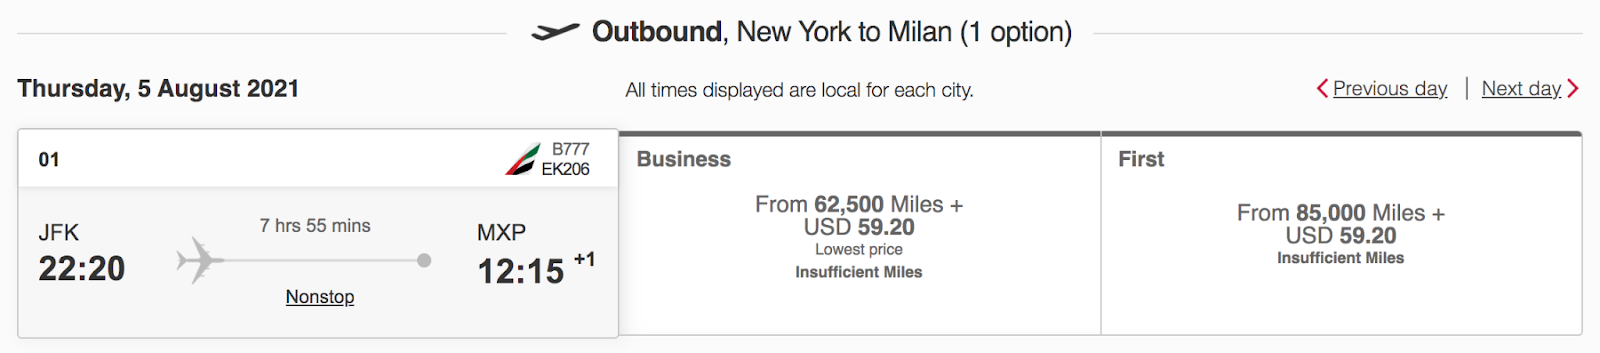 Outbound flight from New York to Milan